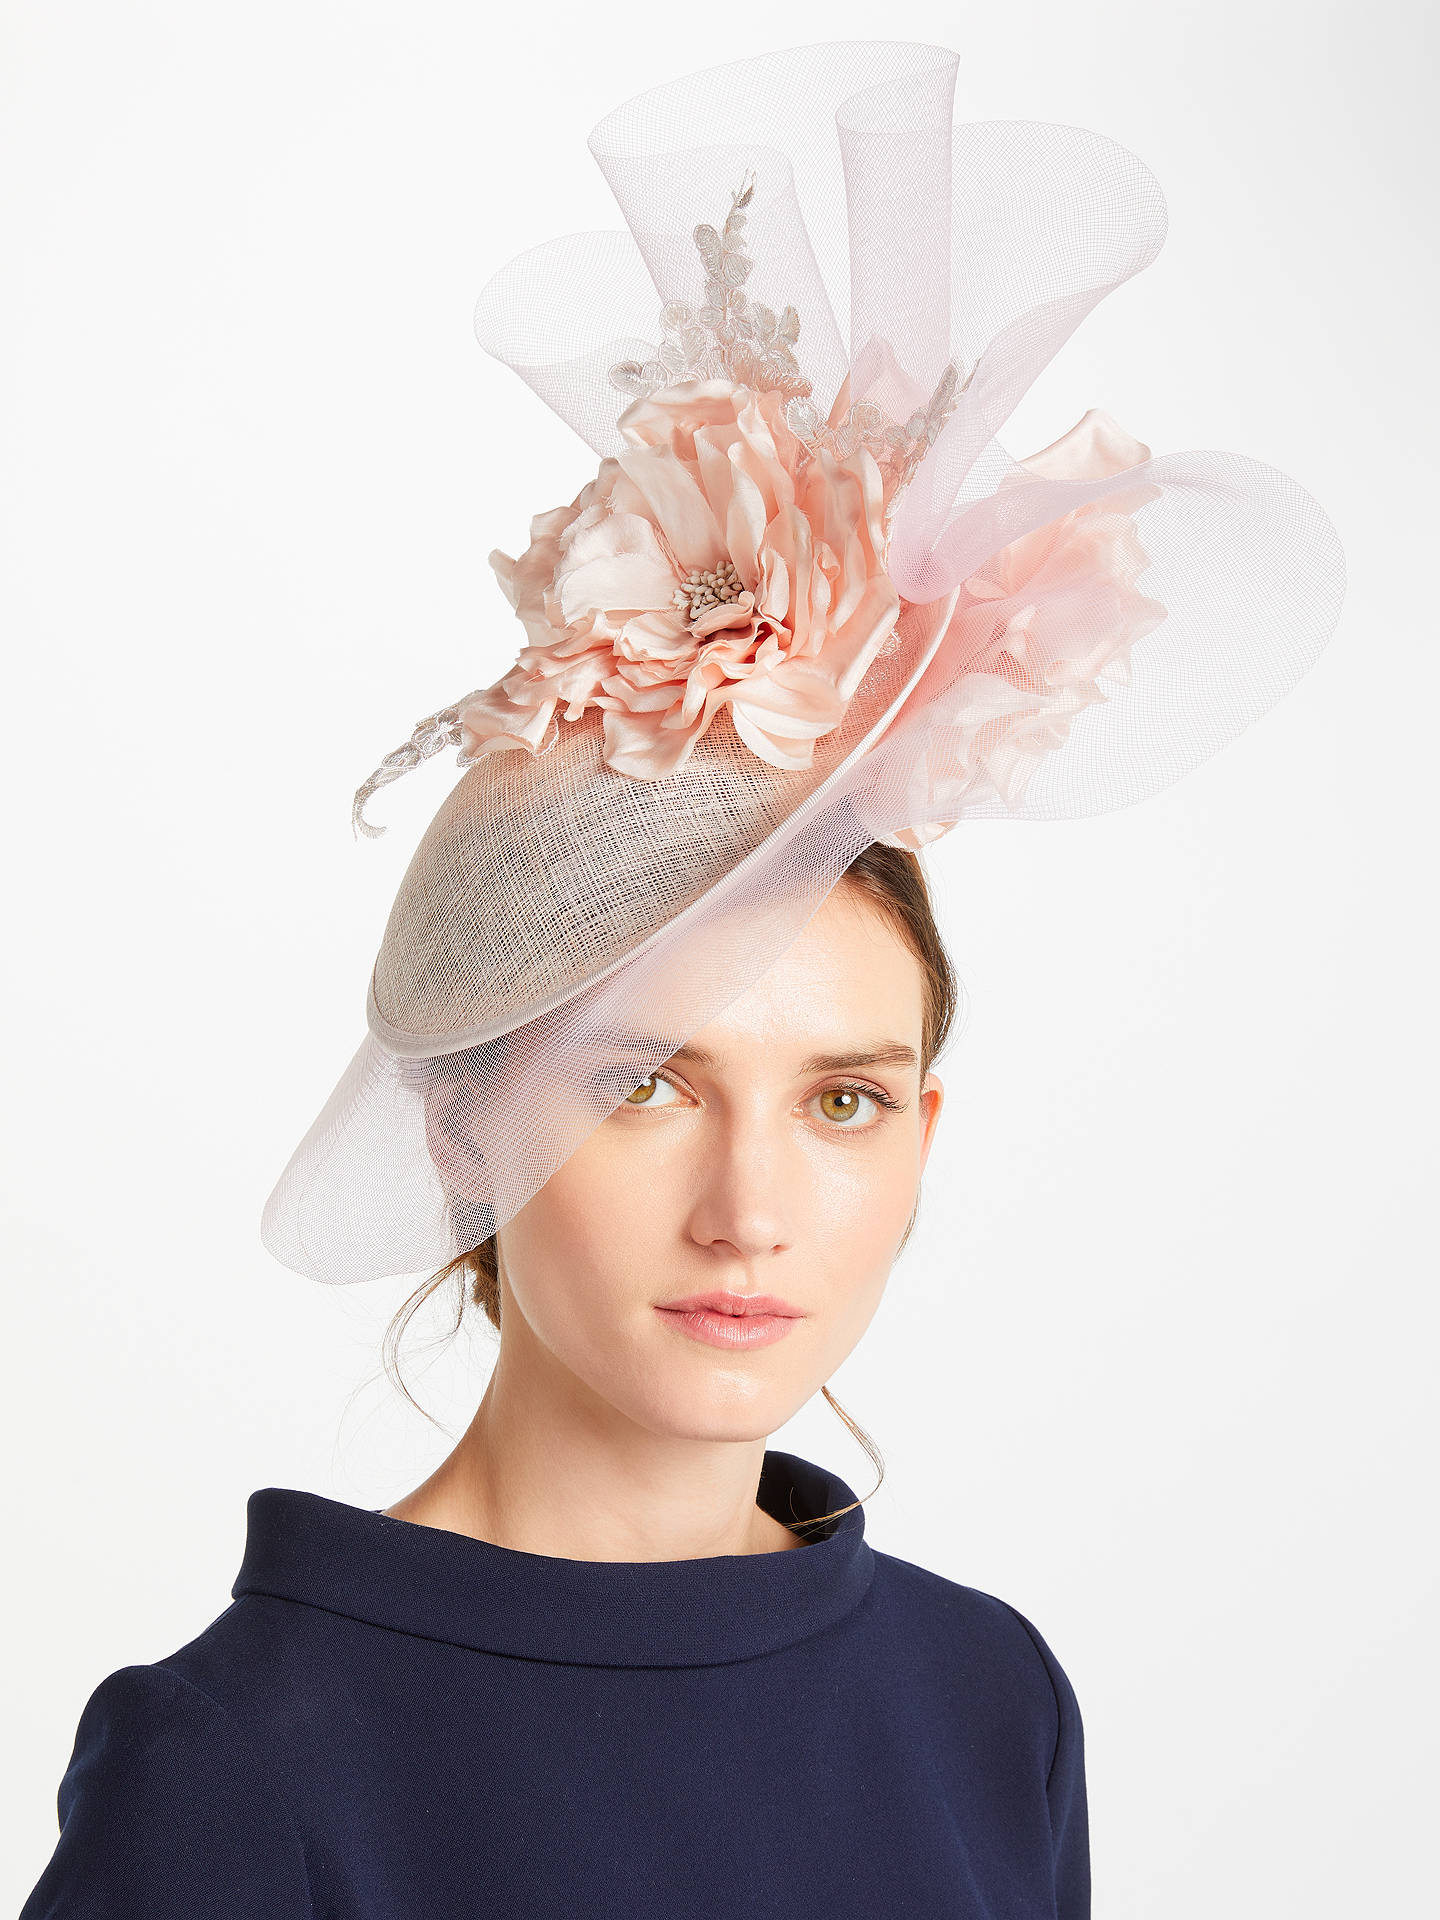 a5f61c3c91b Peter Bettley Viola Side Up Crin Detail Occasion Hat at John Lewis ...